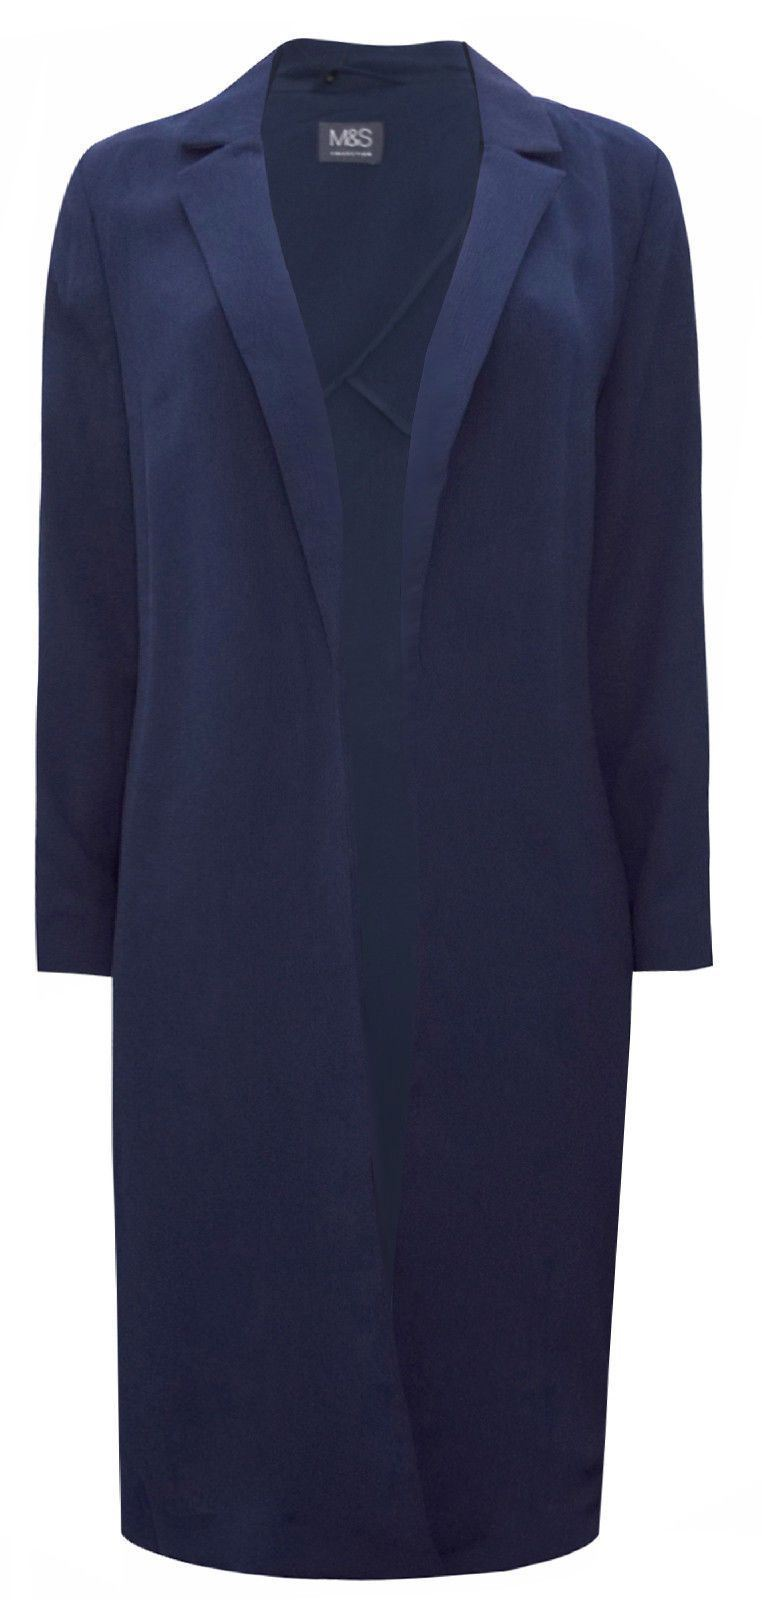 MARKS-AND-SPENCER-Black-or-Navy-Unlined-Crepe-Duster-Coat-SALE-Was-45 thumbnail 11